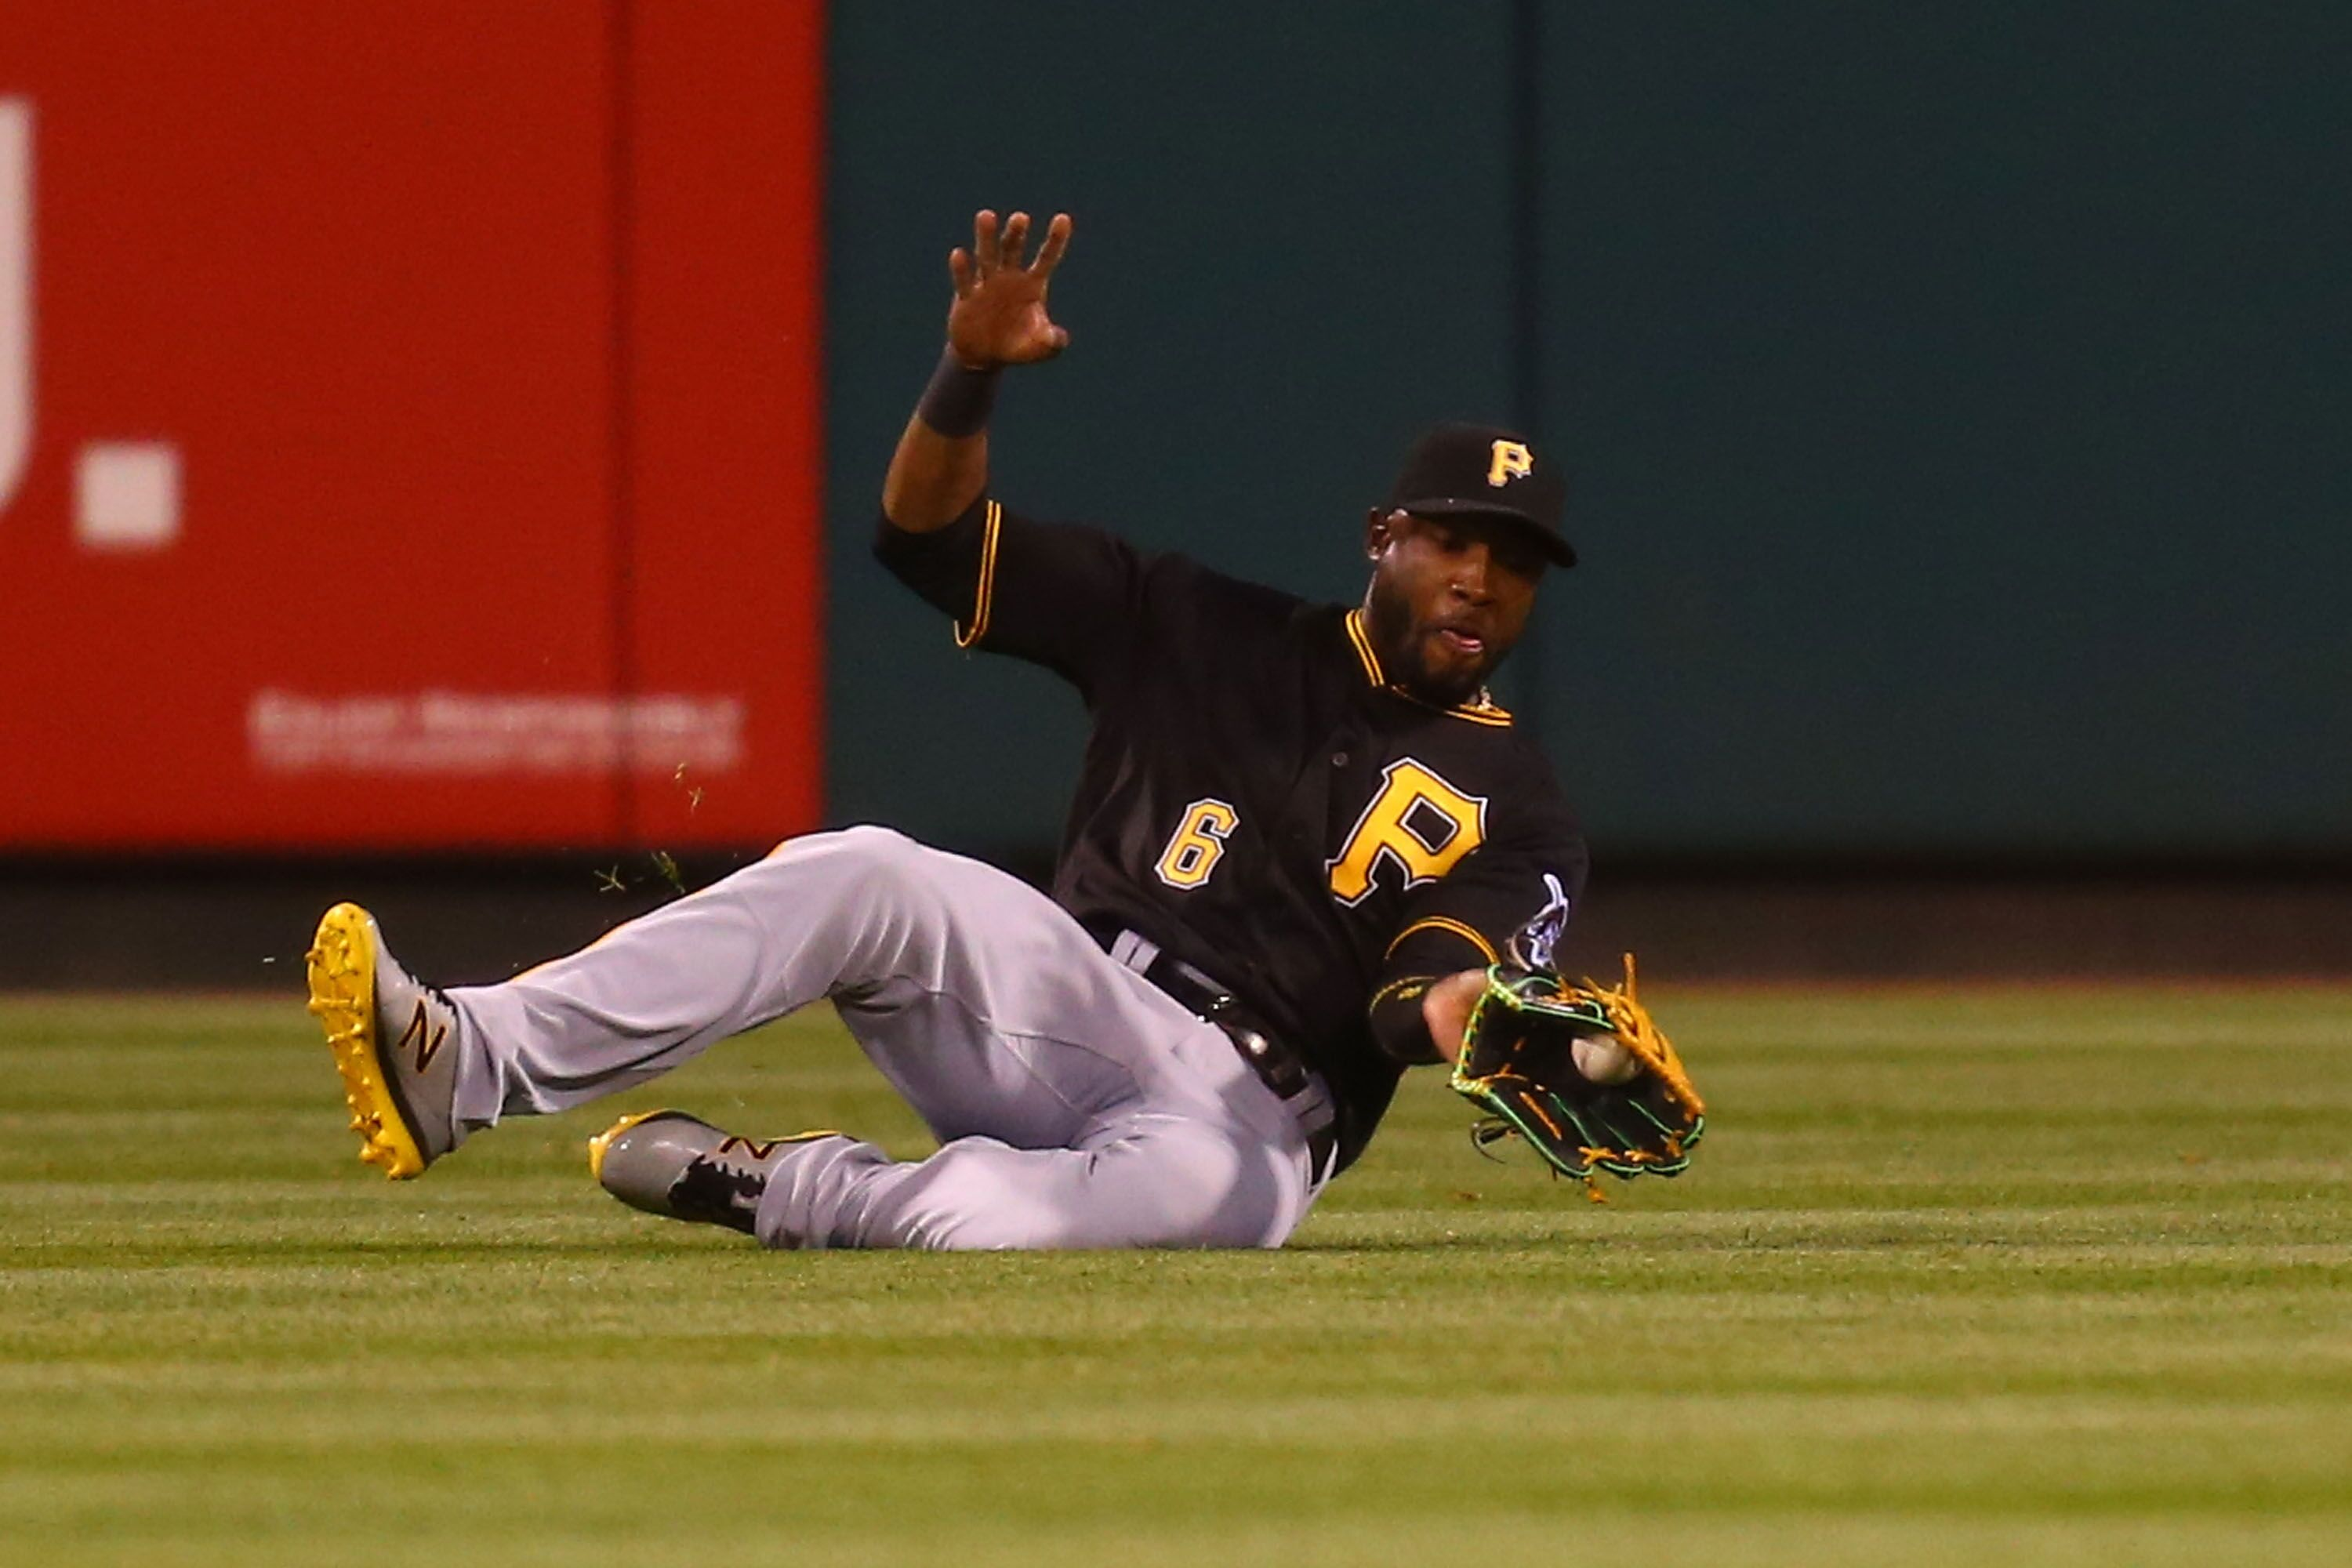 Starling Marte set to Return from PED Suspension